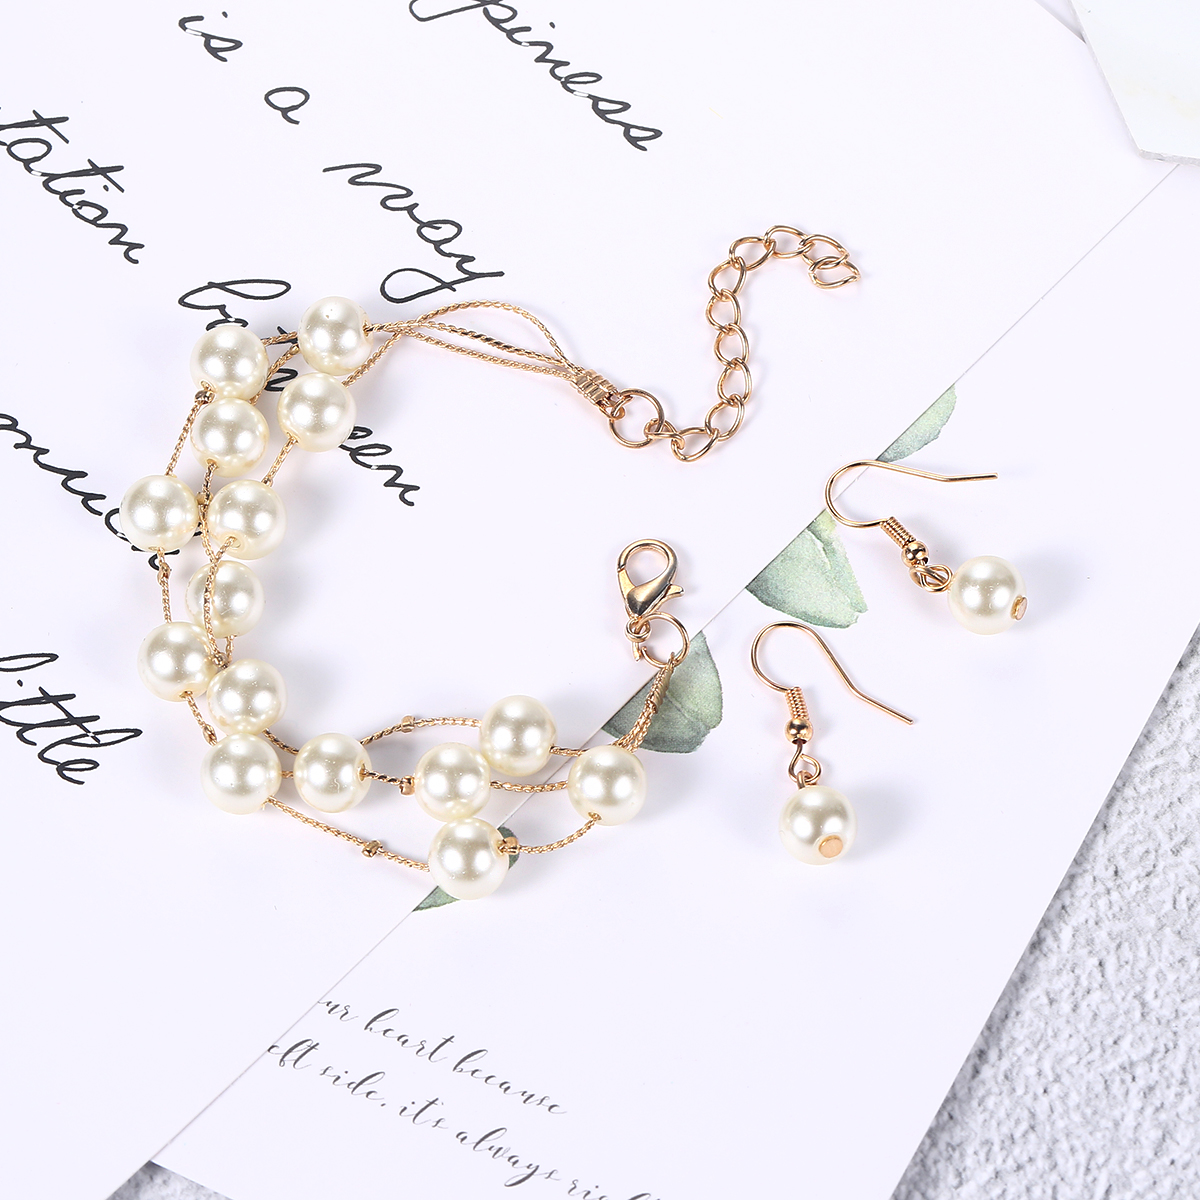 Elegant Style Imitation Pearl Wedding Jewelry Set For Women White Gold Color Necklace Earrings Ring Gift Fashion Jewelry S441